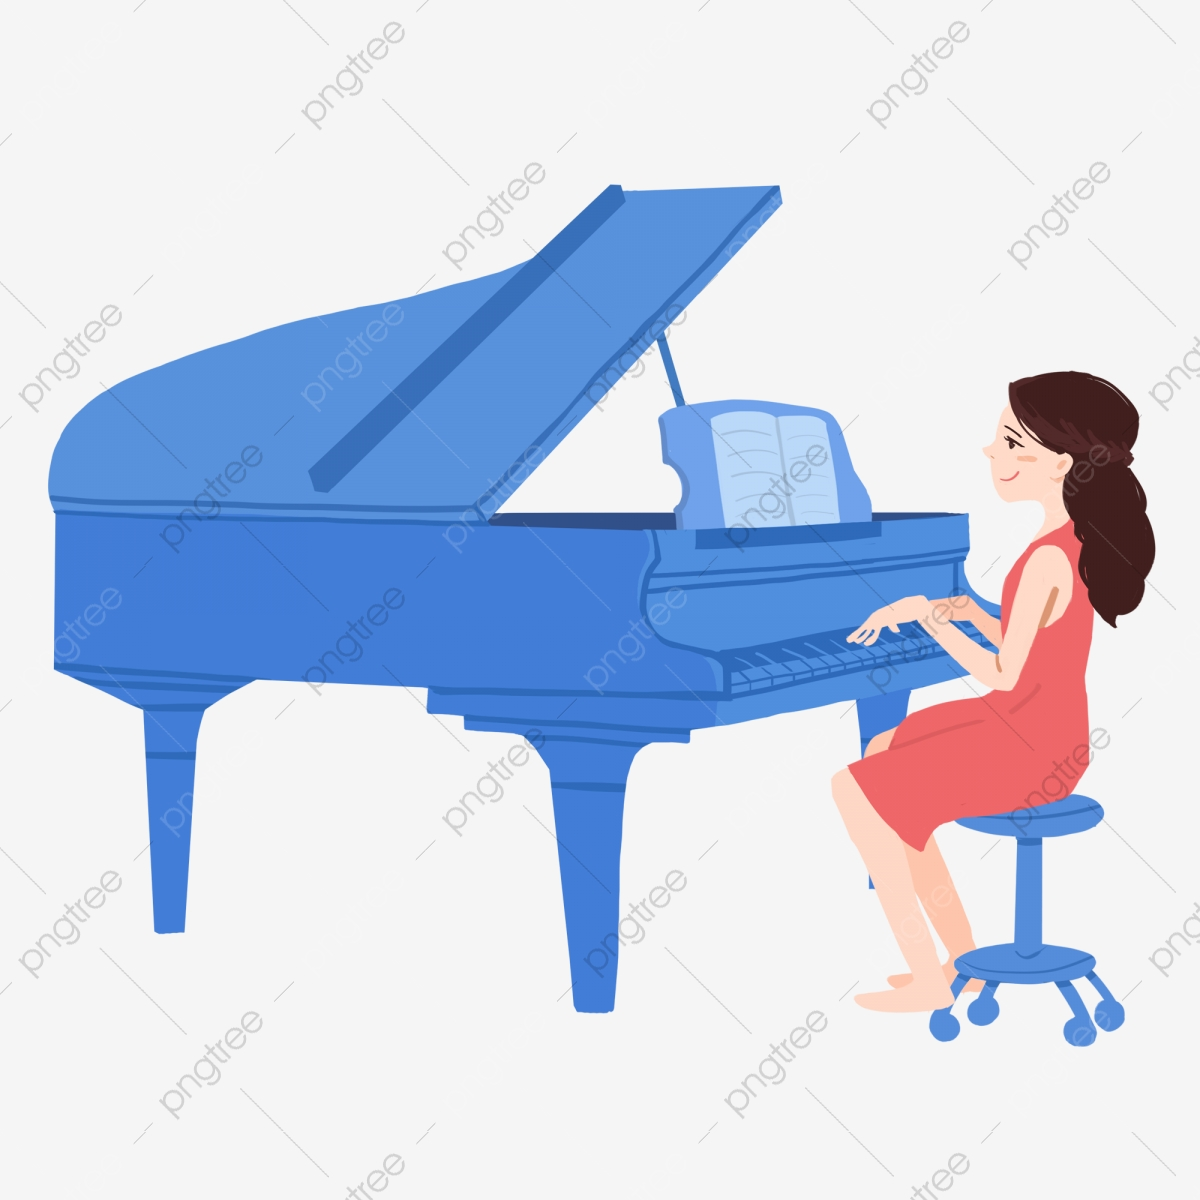 Piano clipart file. Girls playing the alone